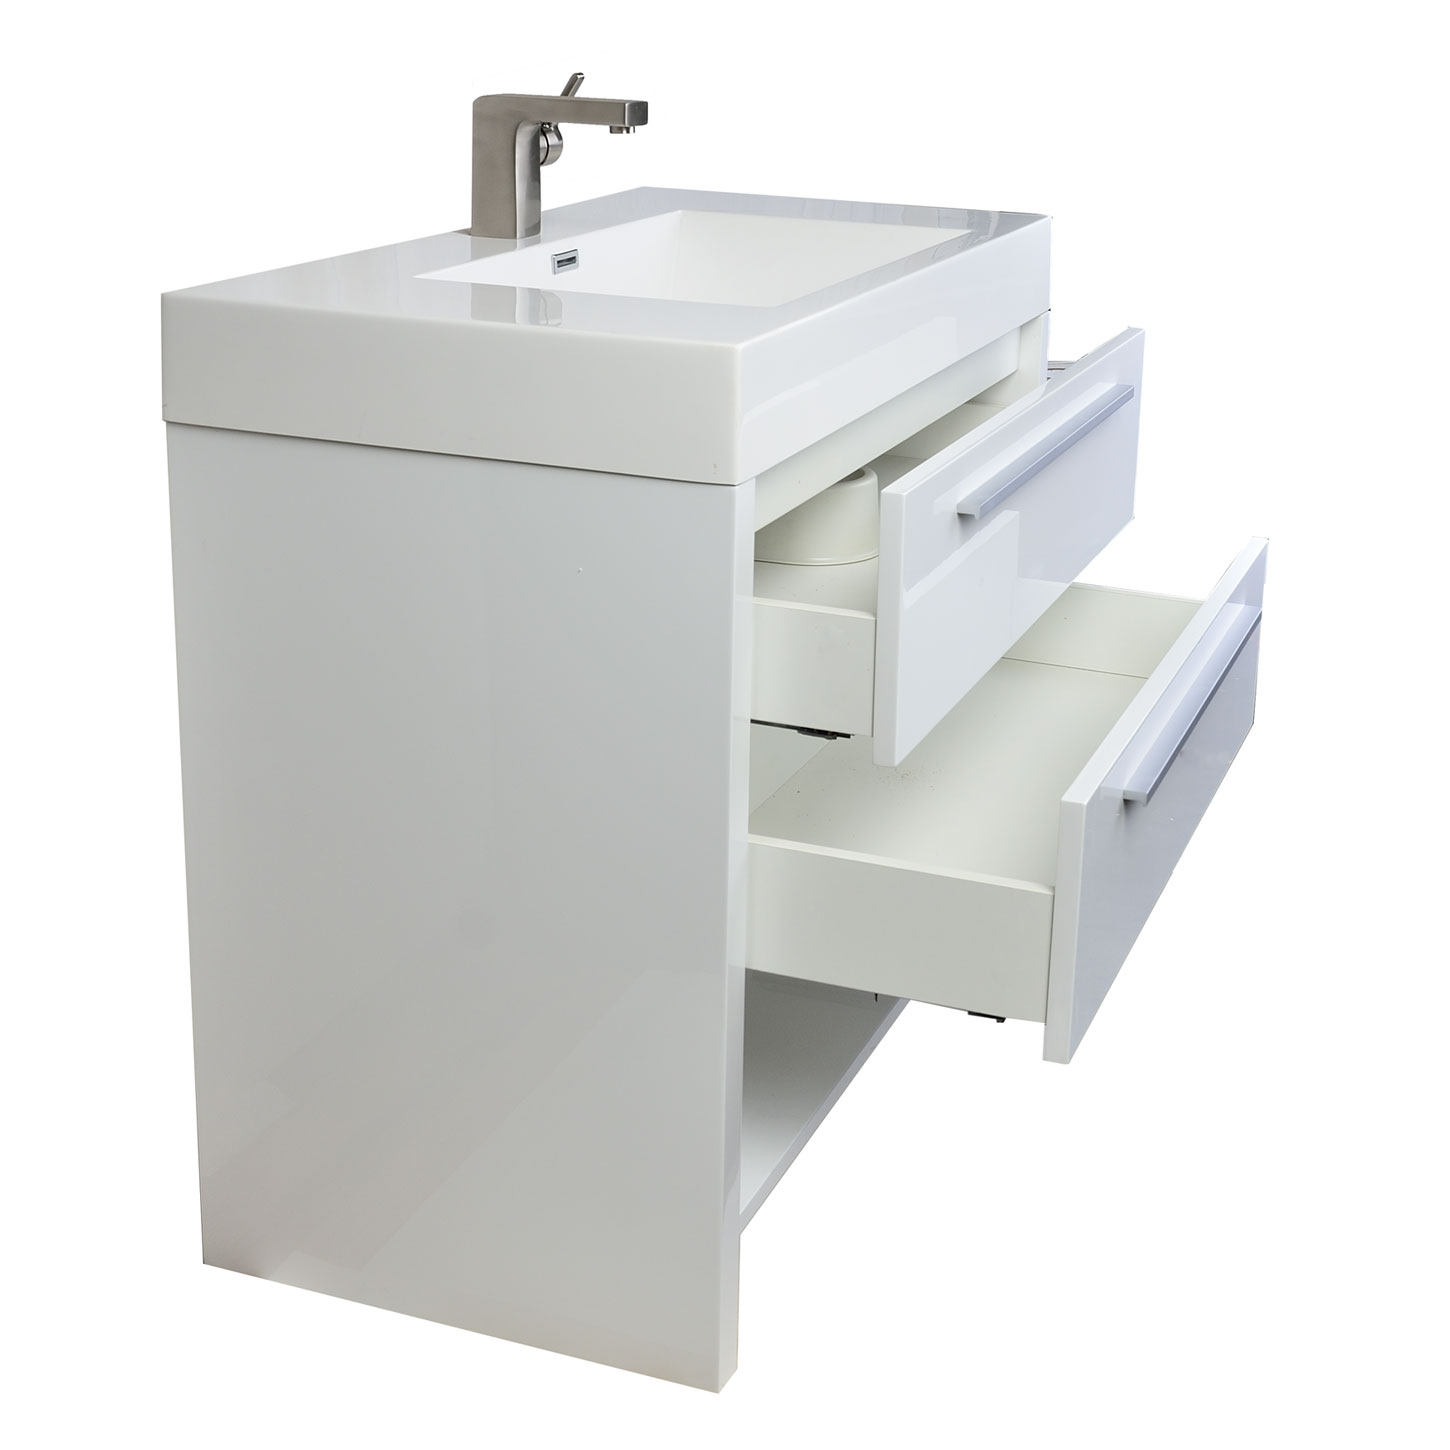 mula 355 modern bathroom vanity high gloss white rs l900 hgw - White Bathroom Vanity 36